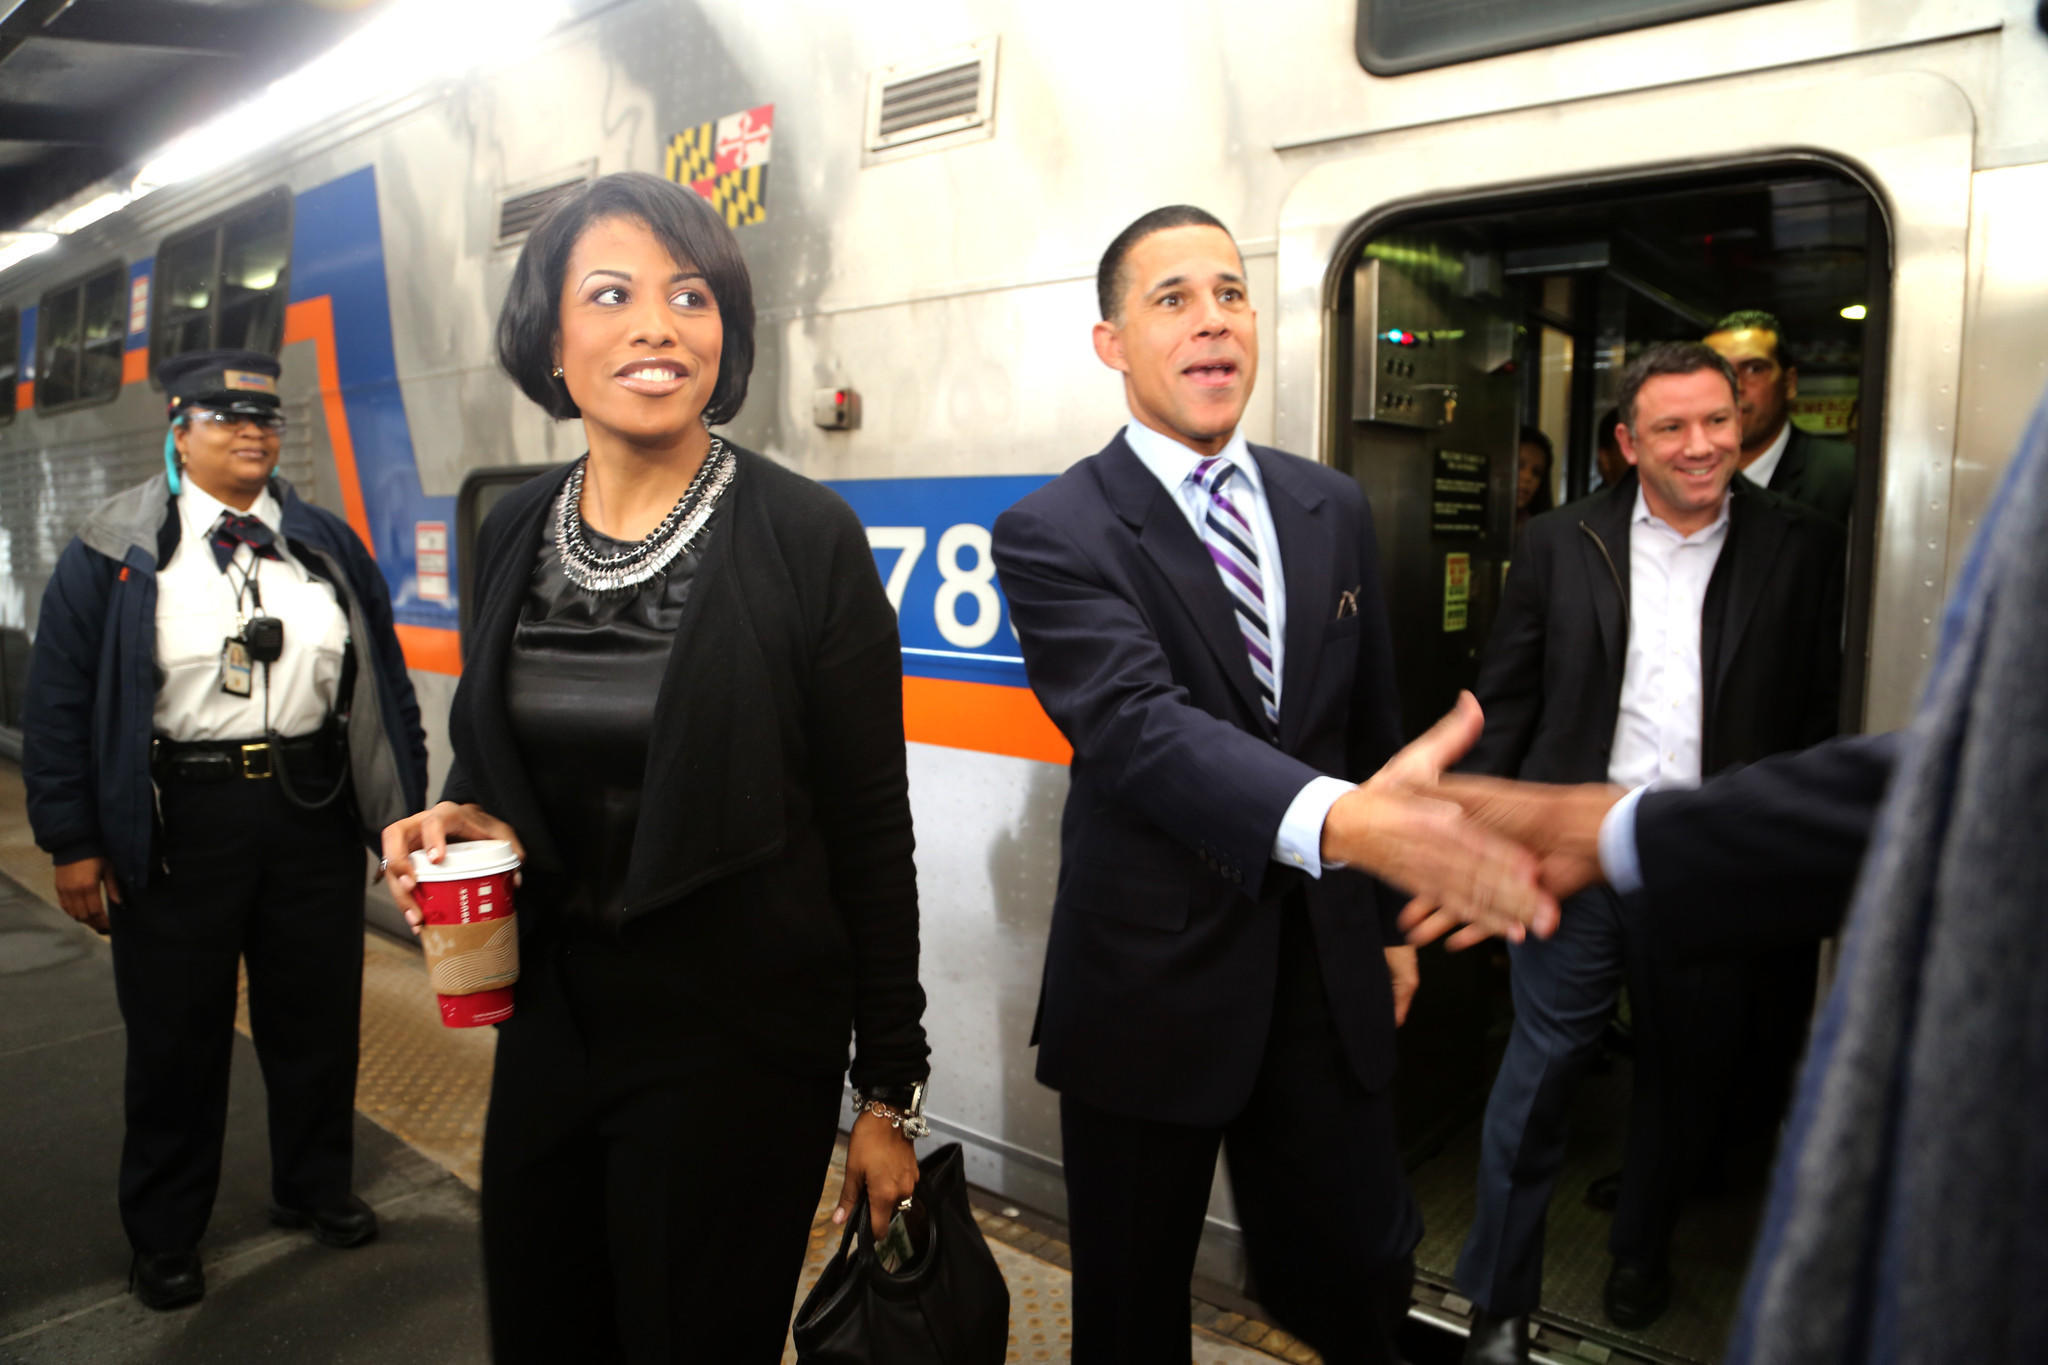 Mayor Stephanie Rawlings-Blake and Lt. Gov. Anthony Brown step off the MARC train after riding the very first train into Baltimore from Union Station in Washington, D.C. The new weekend service for the MARC began this Saturday.